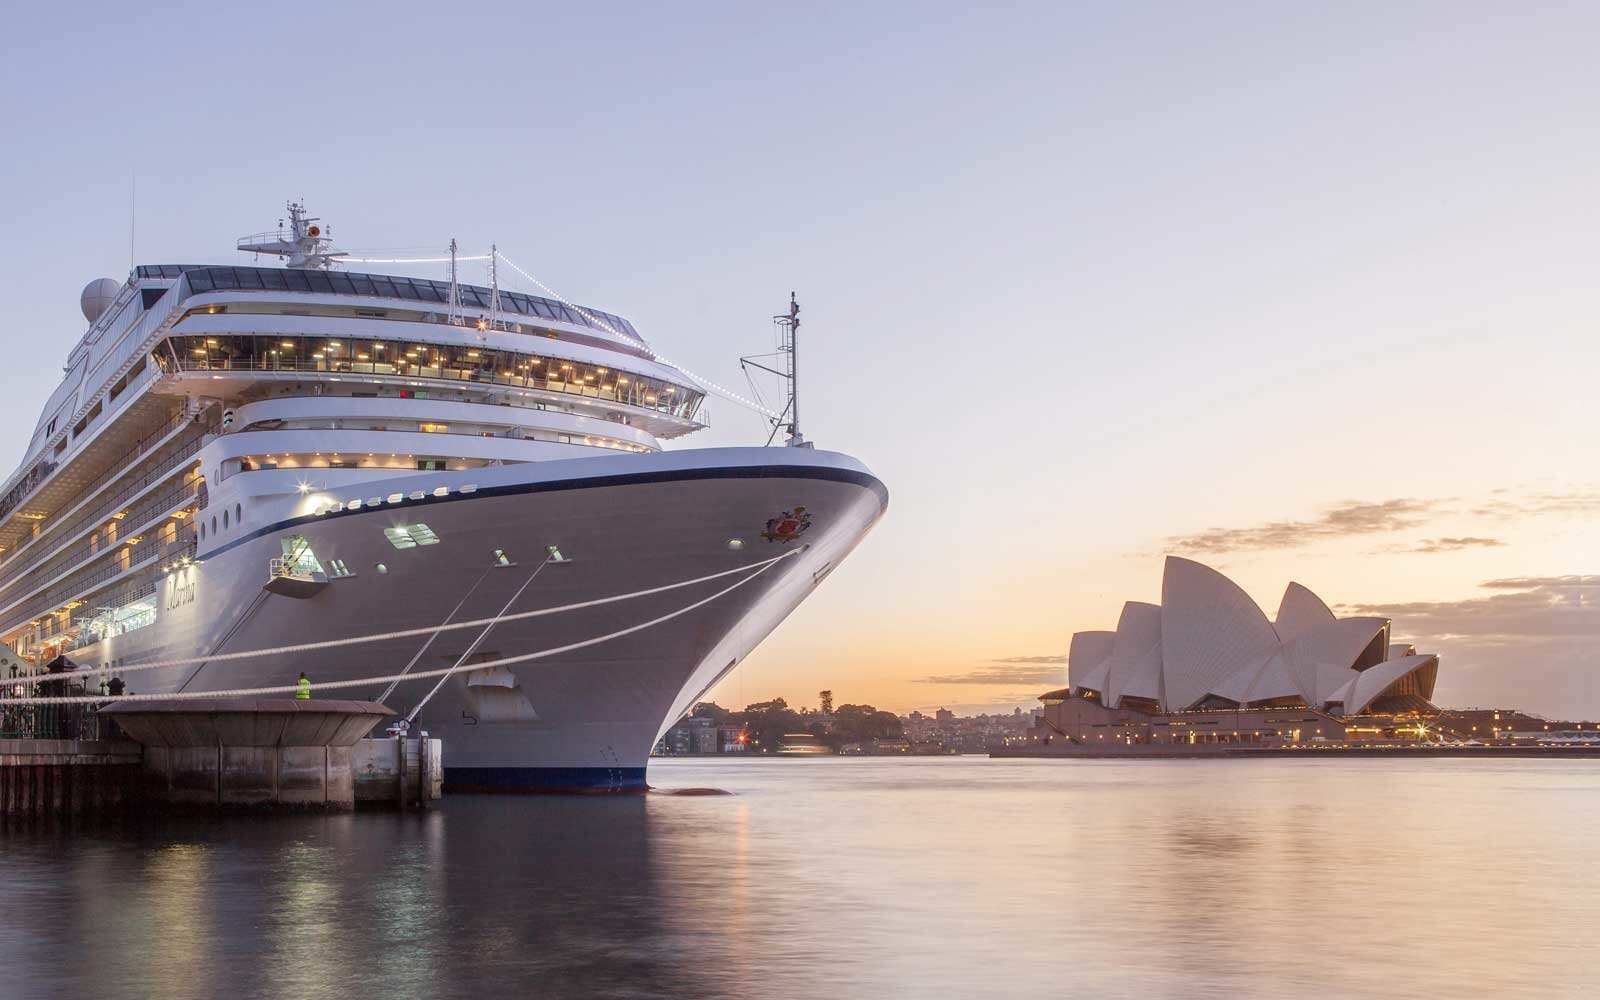 Five Things to Know About Oceania Cruises' Marina Cruise Ship